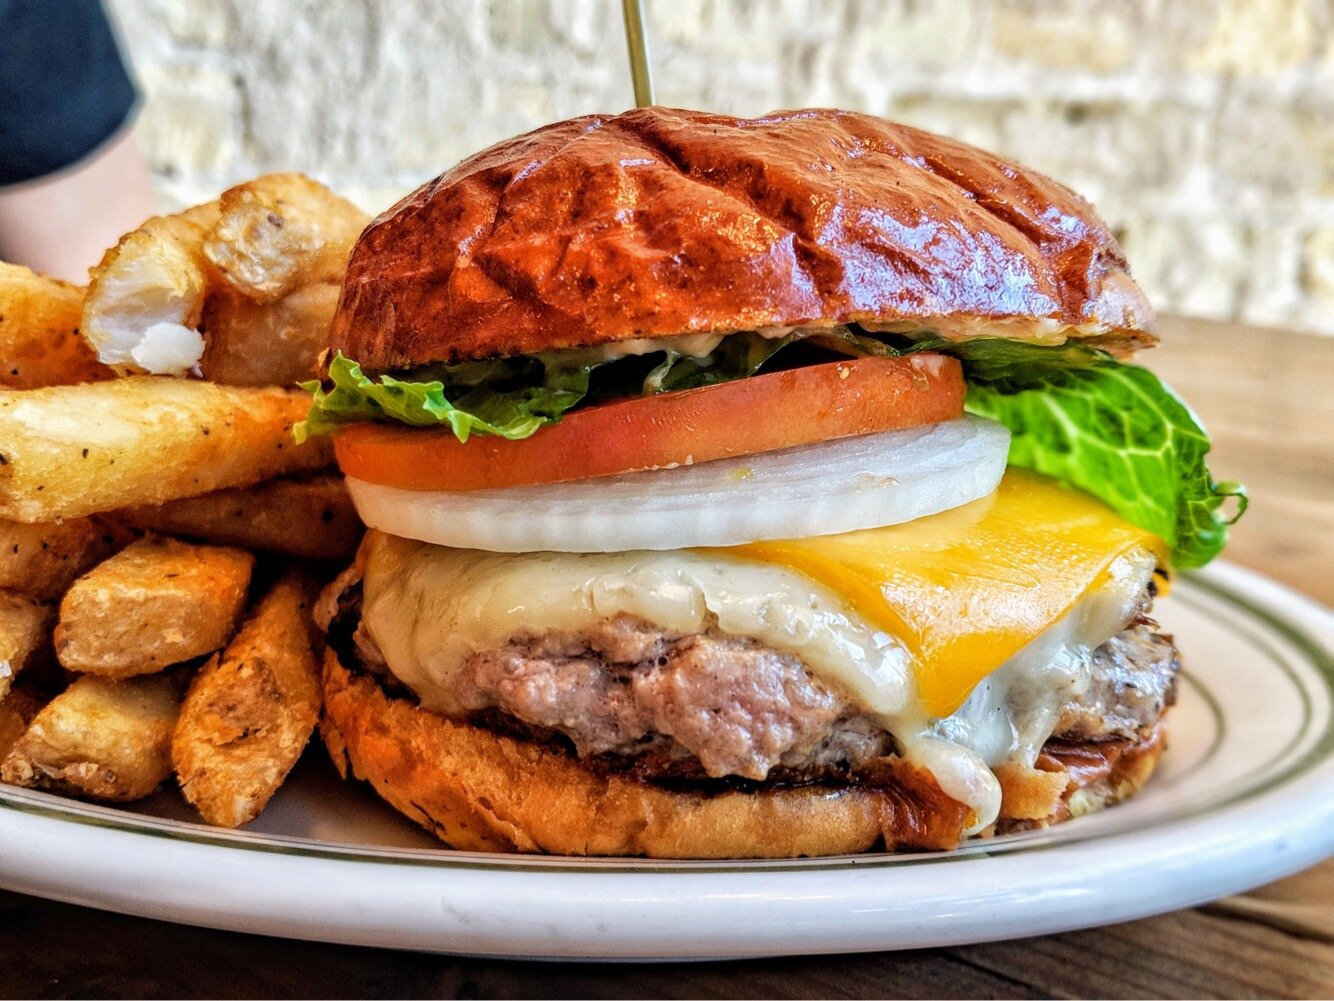 - The Cannibal Burger from Wendigo is a Tenderloin Burger stuffed with Bacon and then topped with Double Cheese, Garlic Aioli, Tomato, Lettuce & Onion.